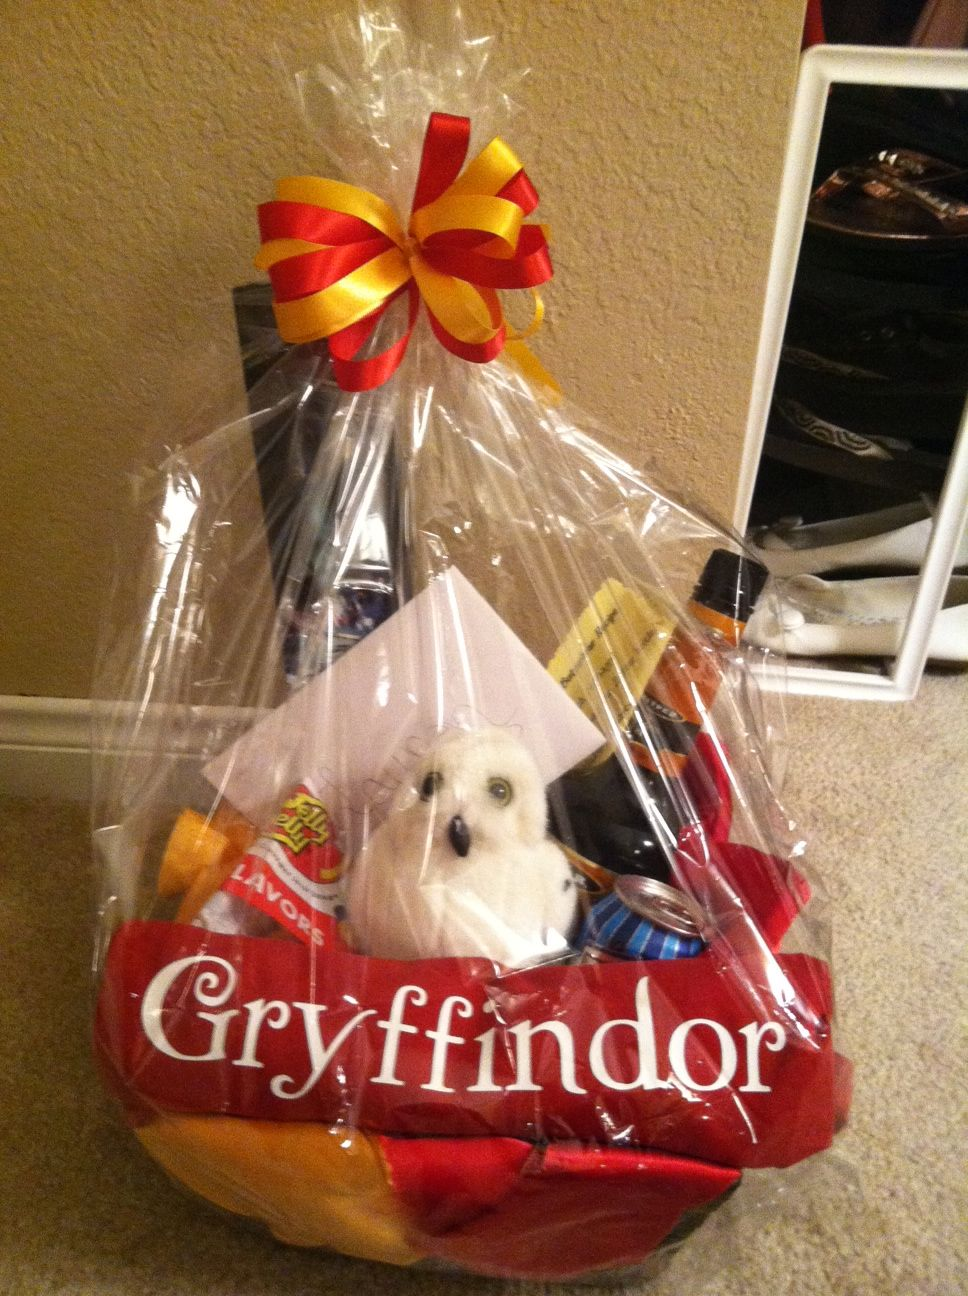 Harry Potter Birthday Gift Basket Complete with replica wand ...